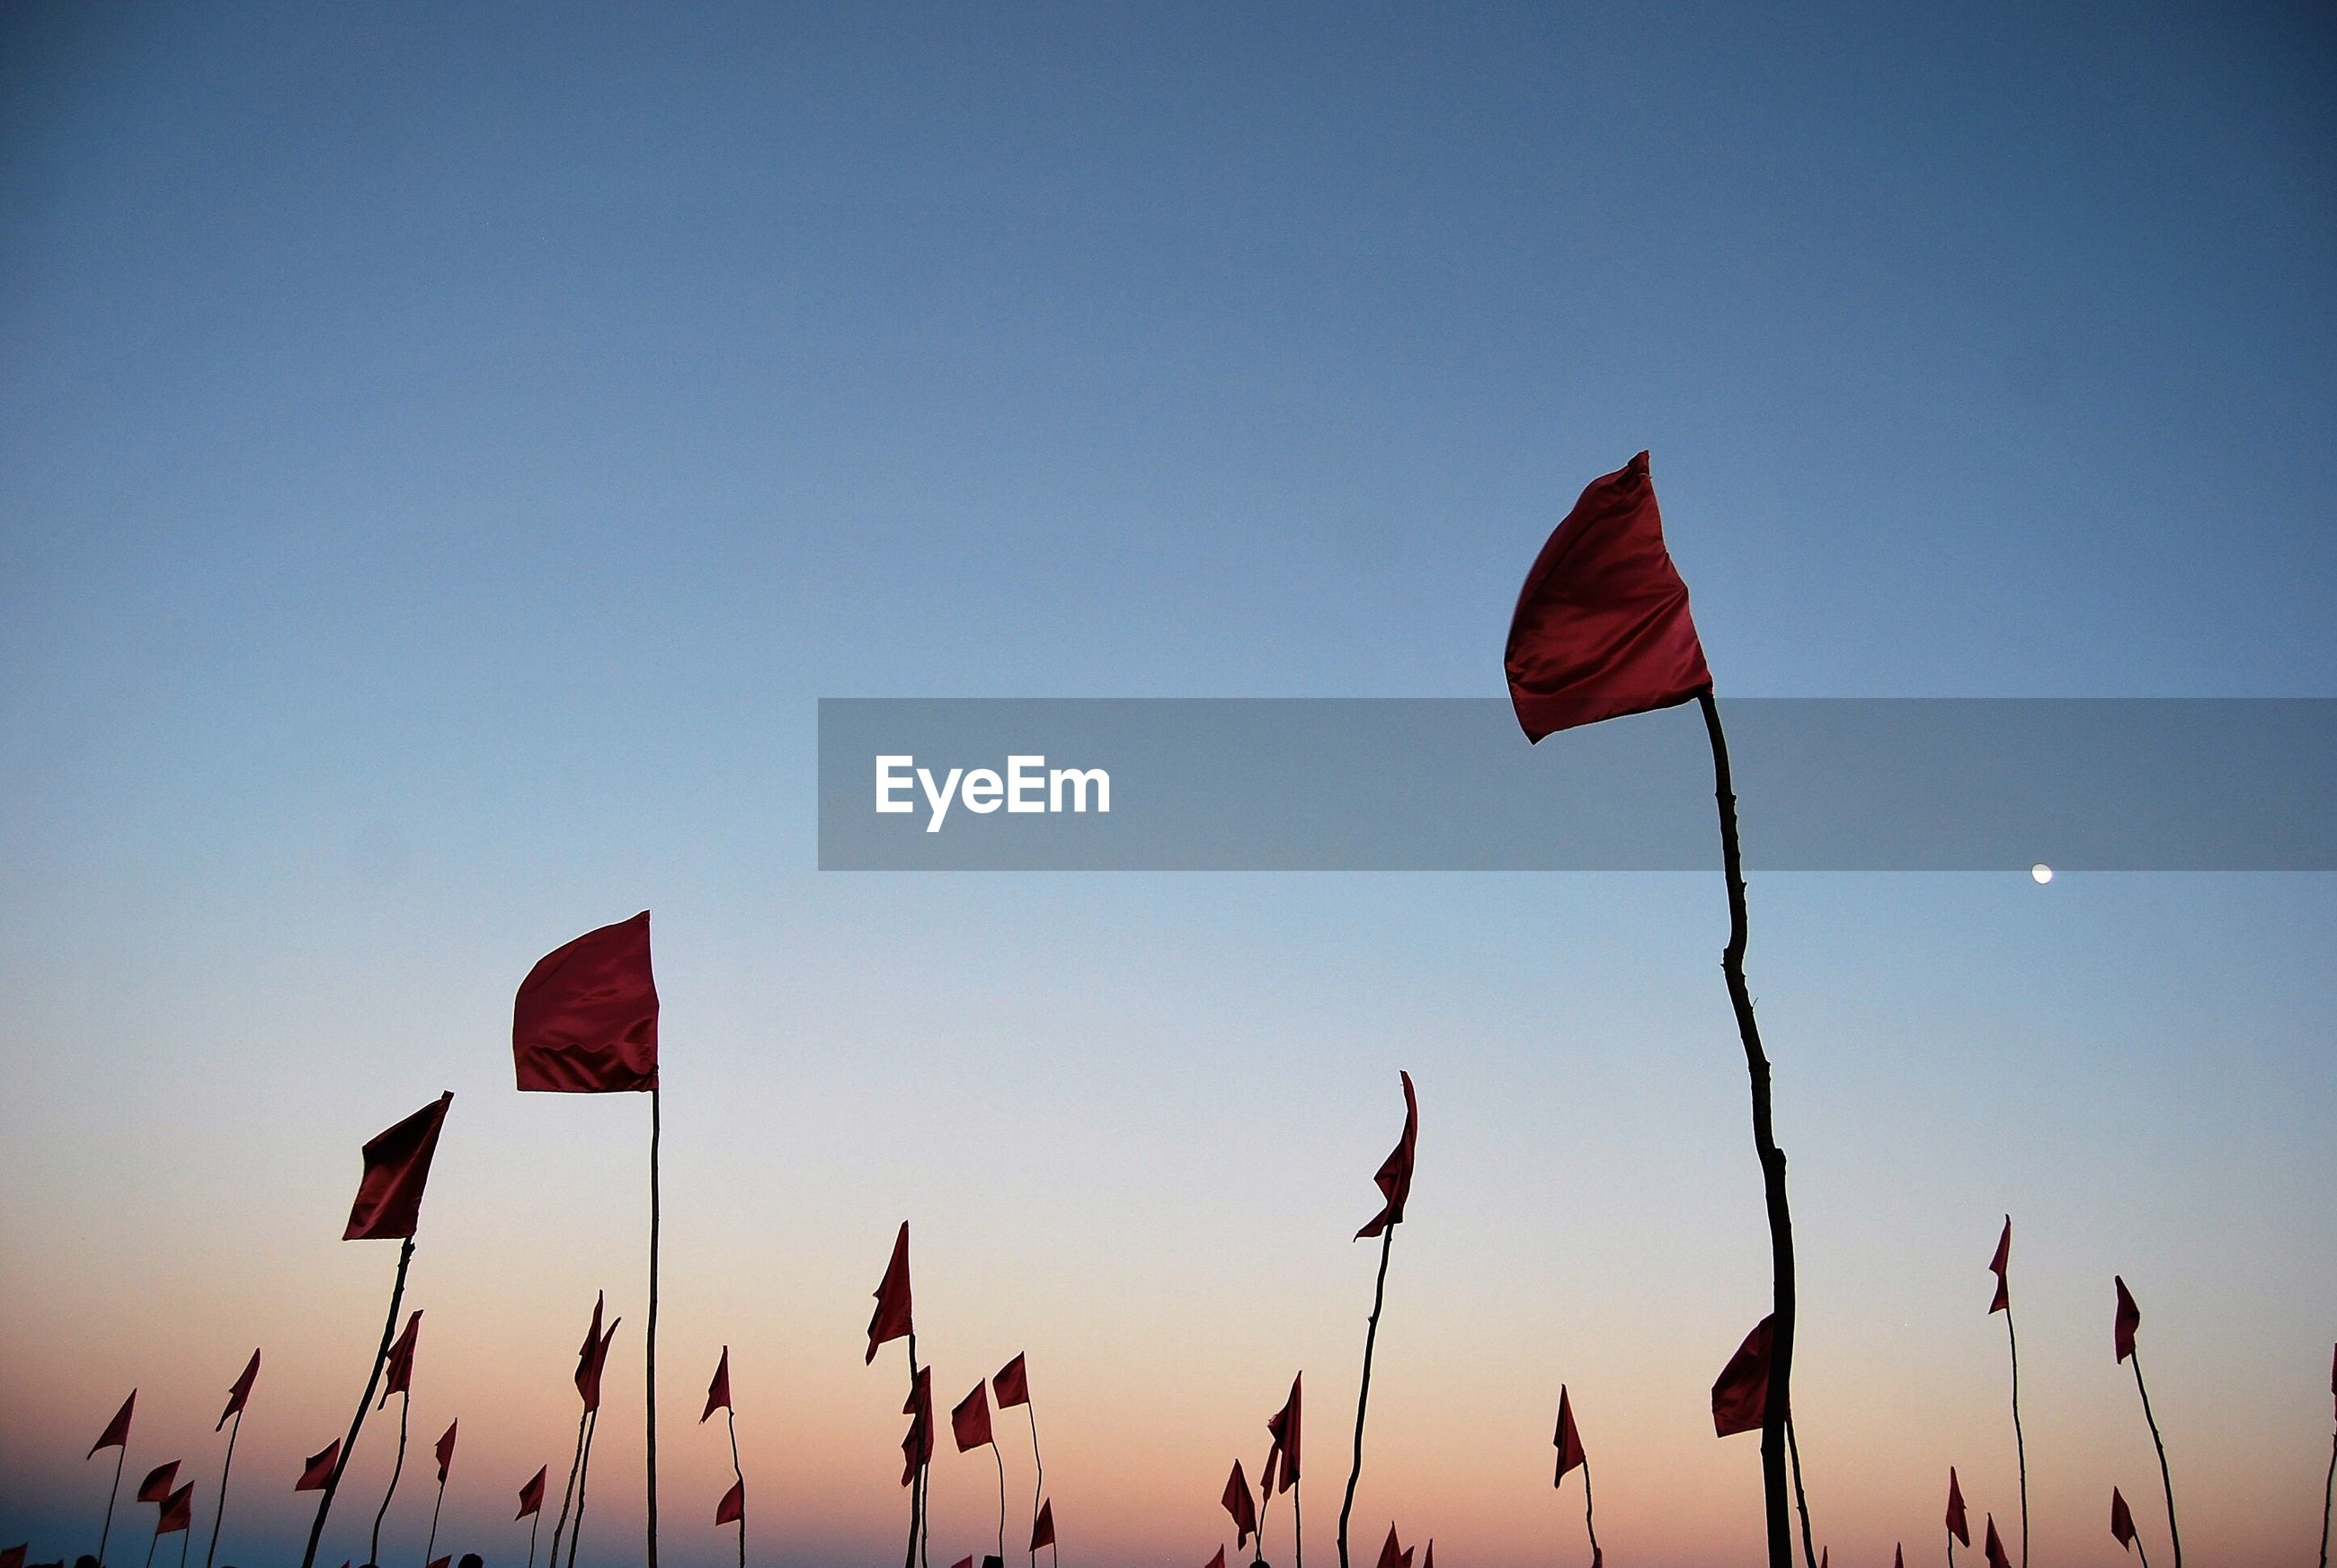 Low angle view of red flags waving against clear sky at dusk